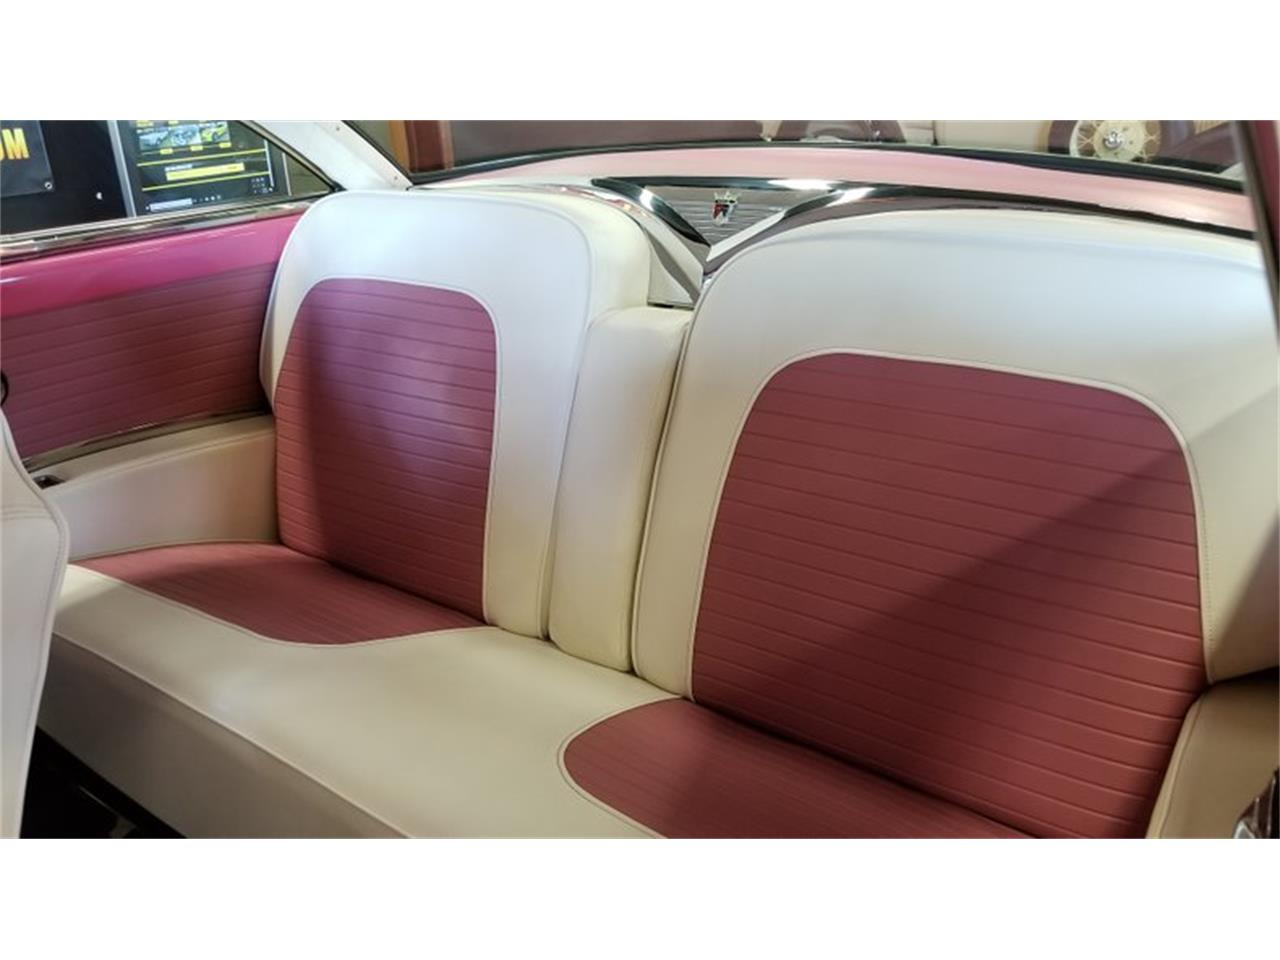 Large Picture of Classic '55 Ford Crown Victoria located in Mankato Minnesota - $39,900.00 - PW8I